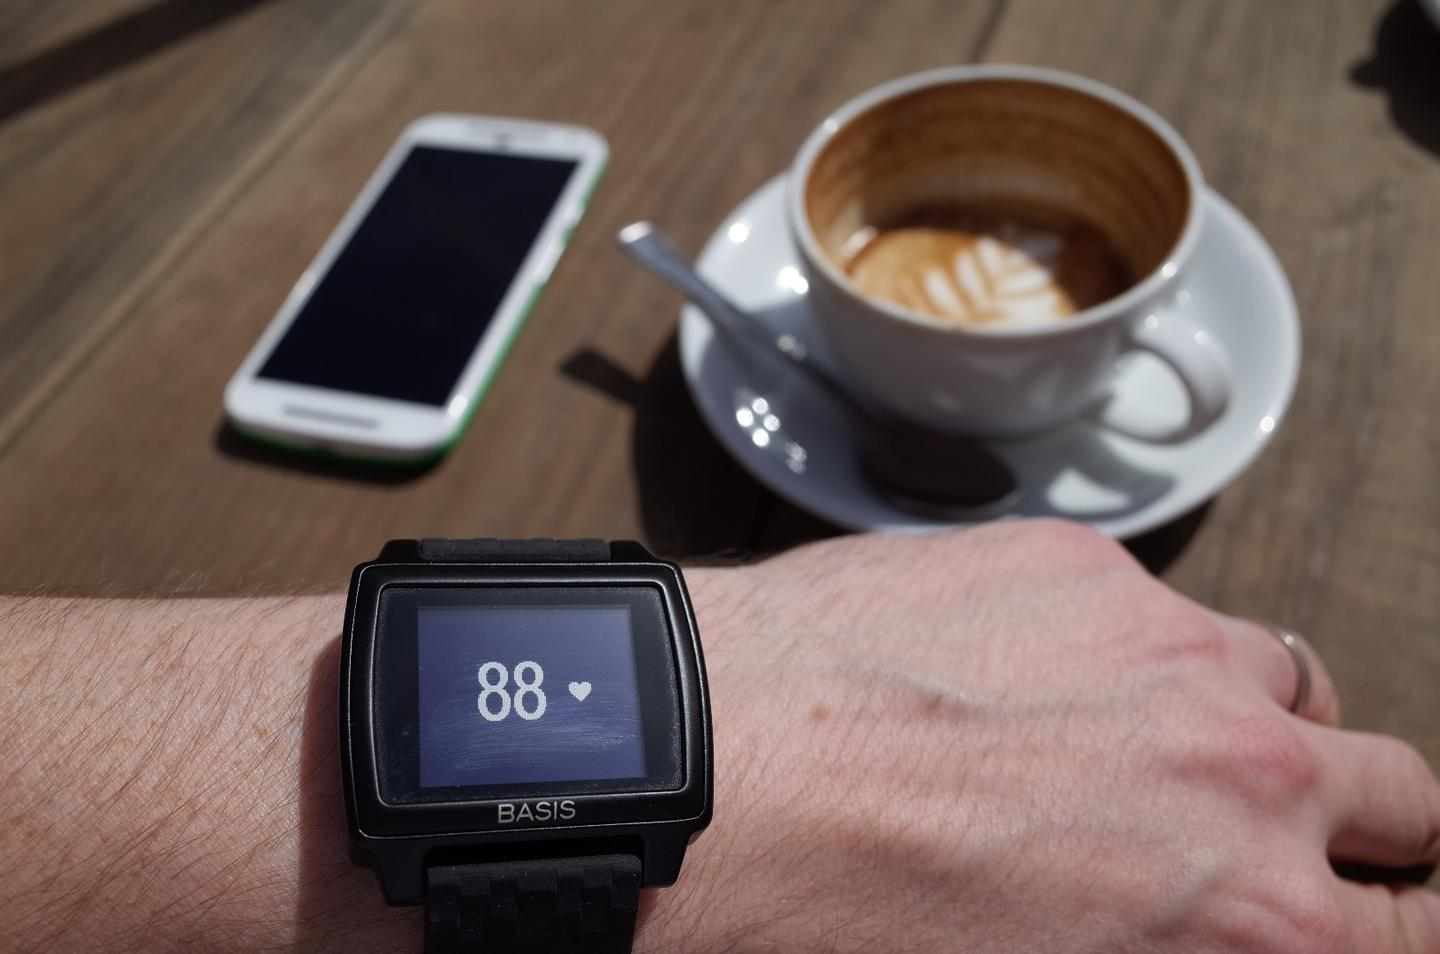 The screen of the Basis Peak fitness tracker is easy to see even in bright sunlight (Photo: Simon Crisp/Gizmag.com)